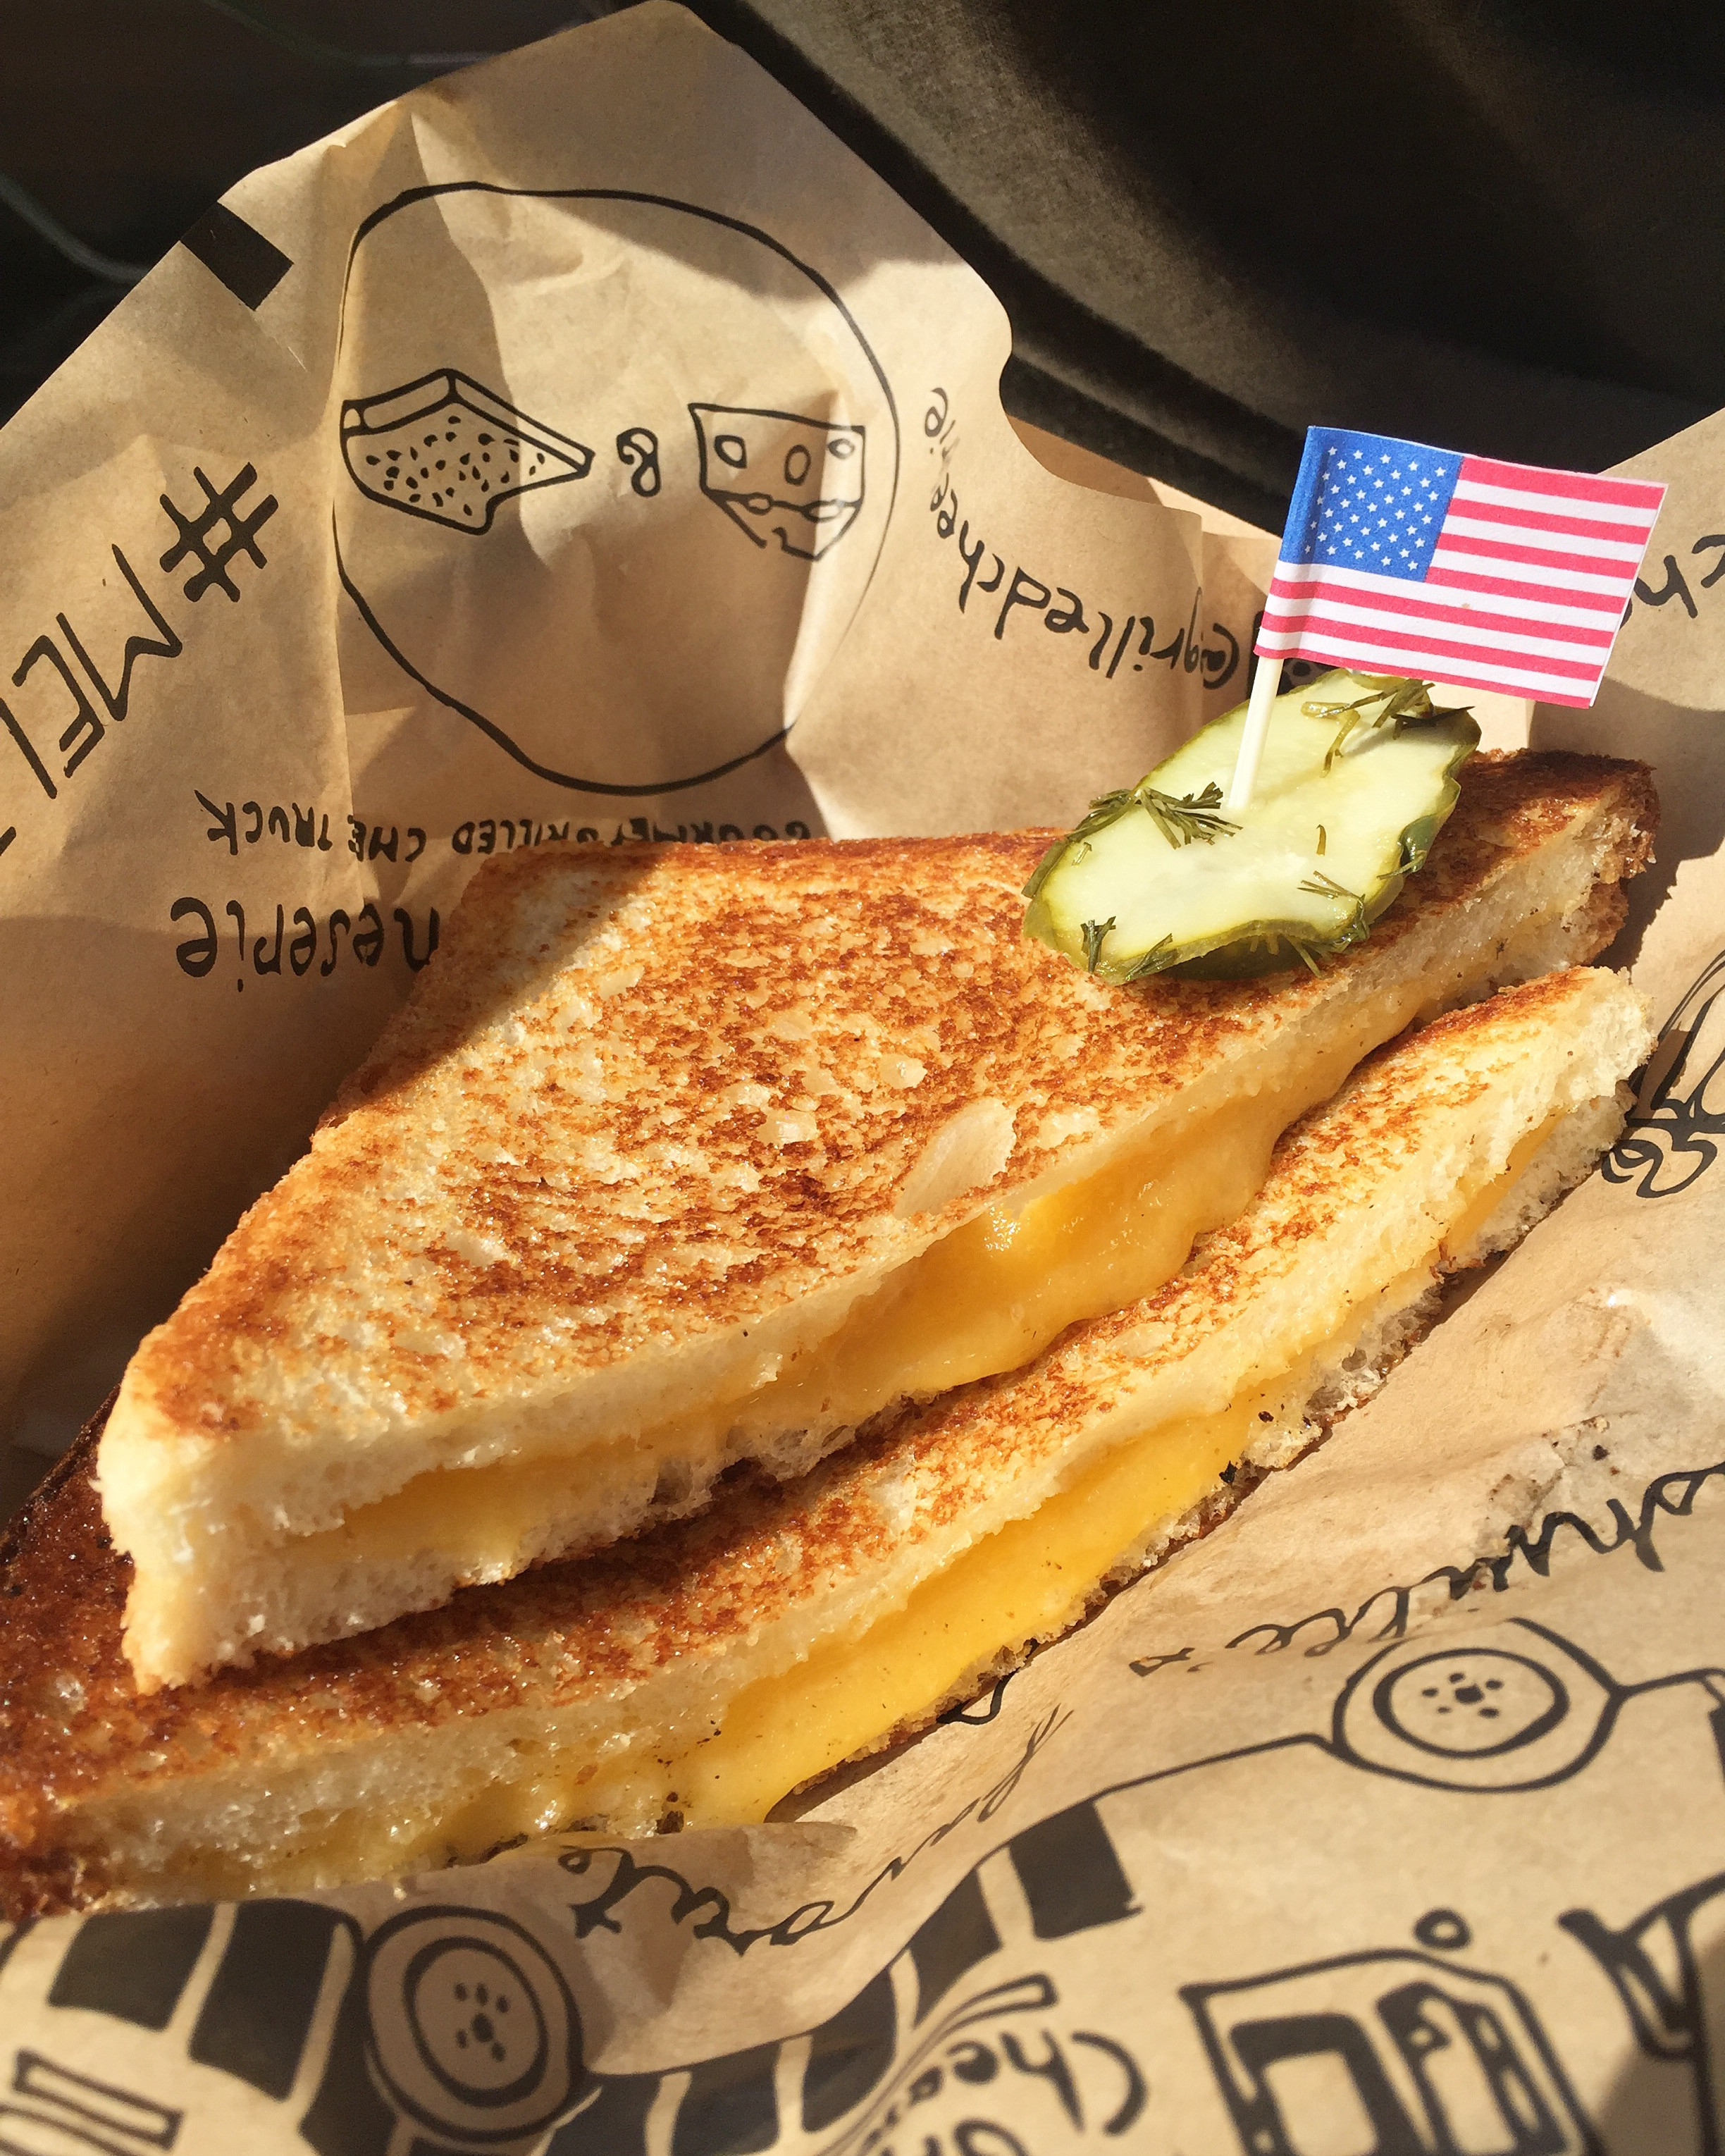 Real American Cheese on Sourdough, classic.